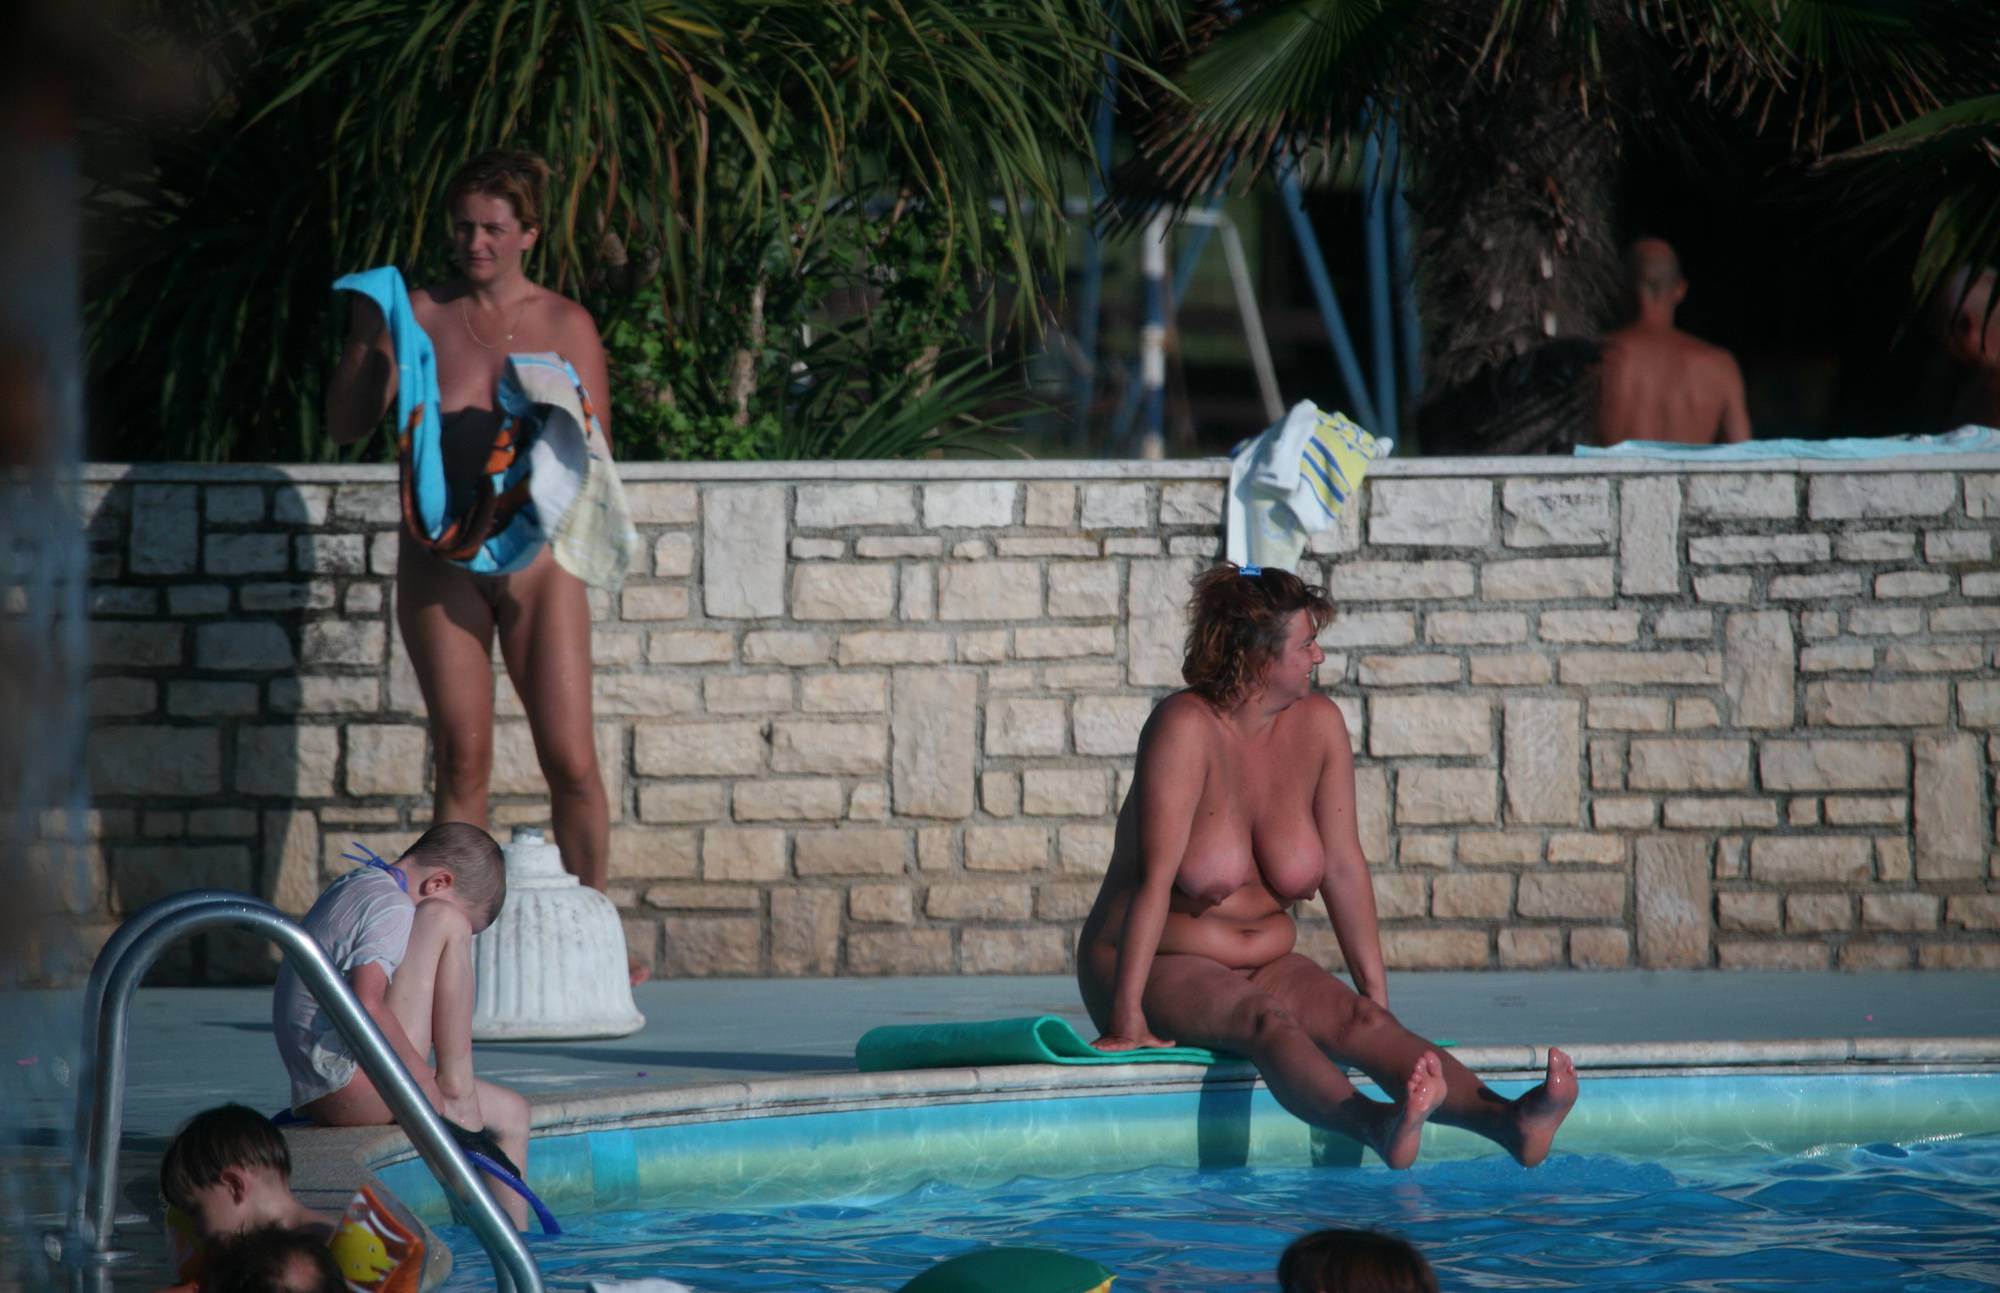 Our Outdoor Pool Activity - 1